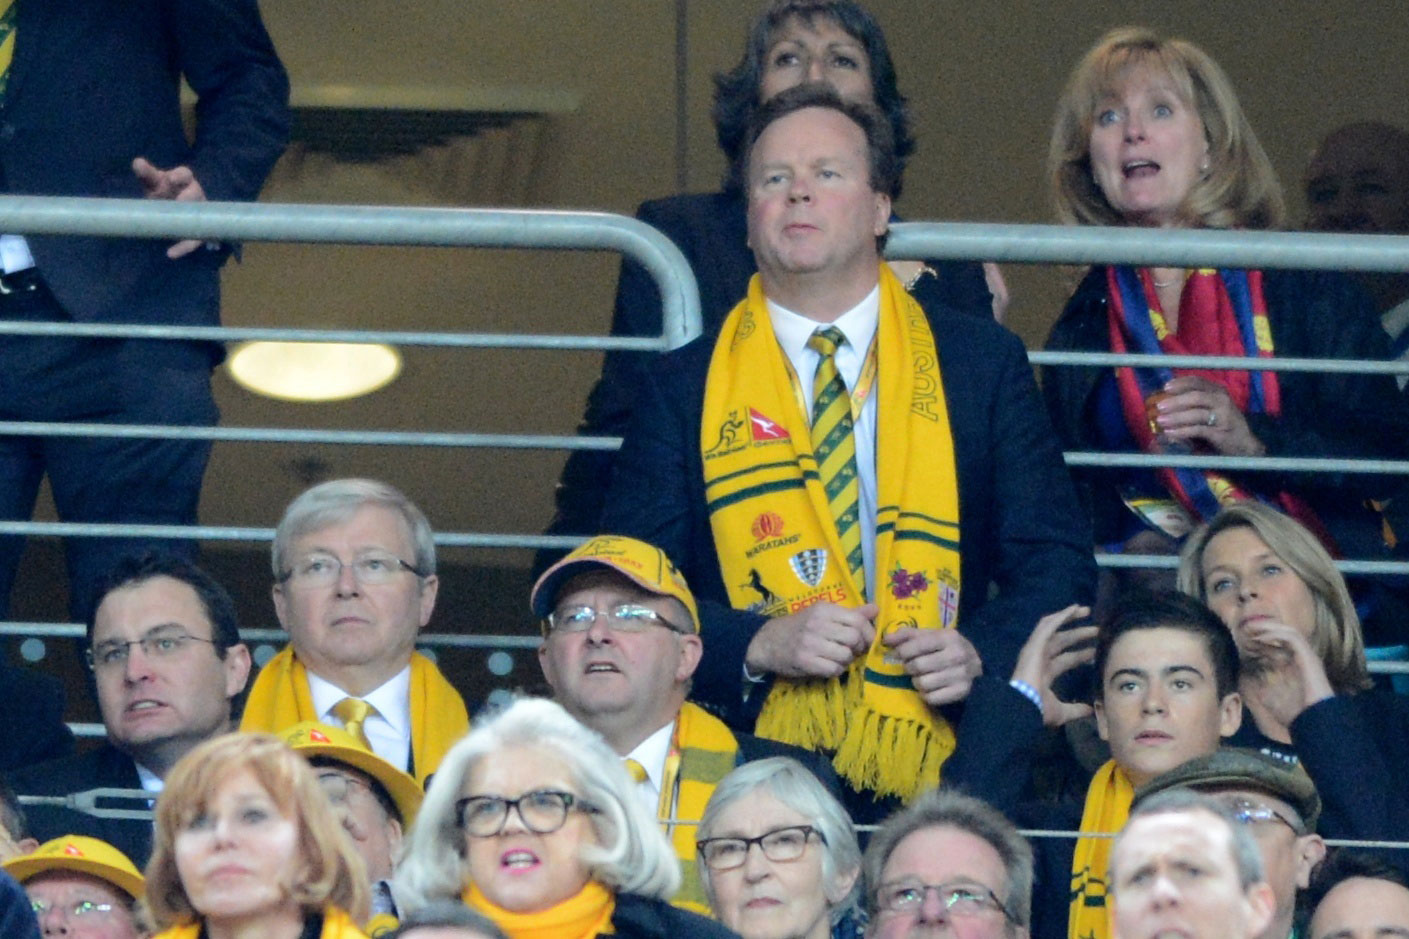 Prime Minister Kevin Rudd, Deputy Prime Minister Anthony Albanese and ARU boss Bill Pulver during the third Test match between the British and Irish Lions and the Wallabies at ANZ Stadium in Sydney, Saturday, July 6, 2013. (AAP Image/Dean Lewins)